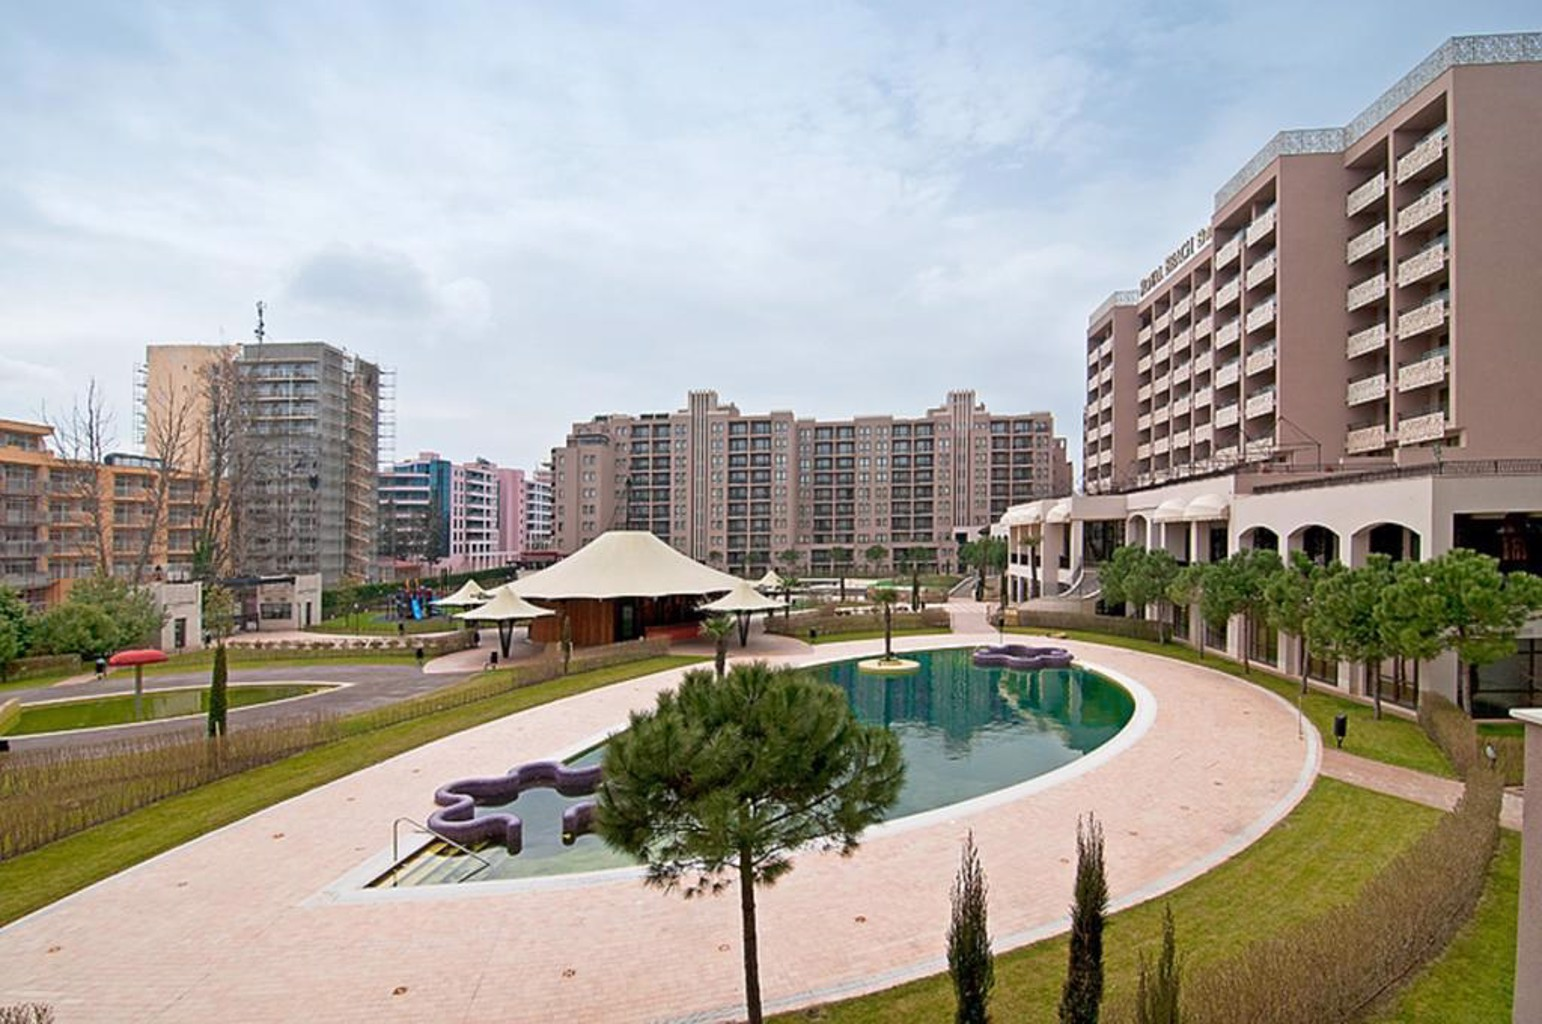 Gallery image of Royal Beach Apartments